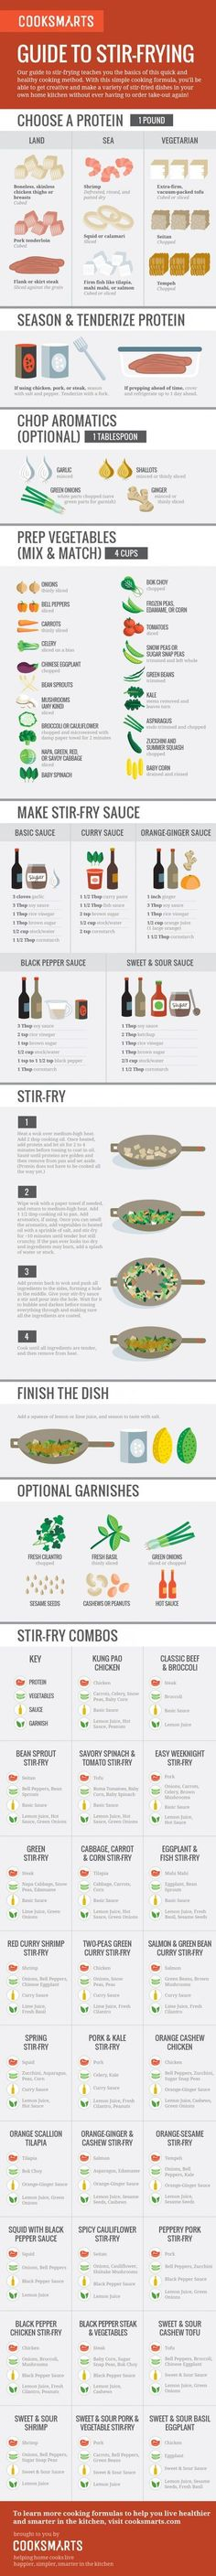 How to stir-fry ever